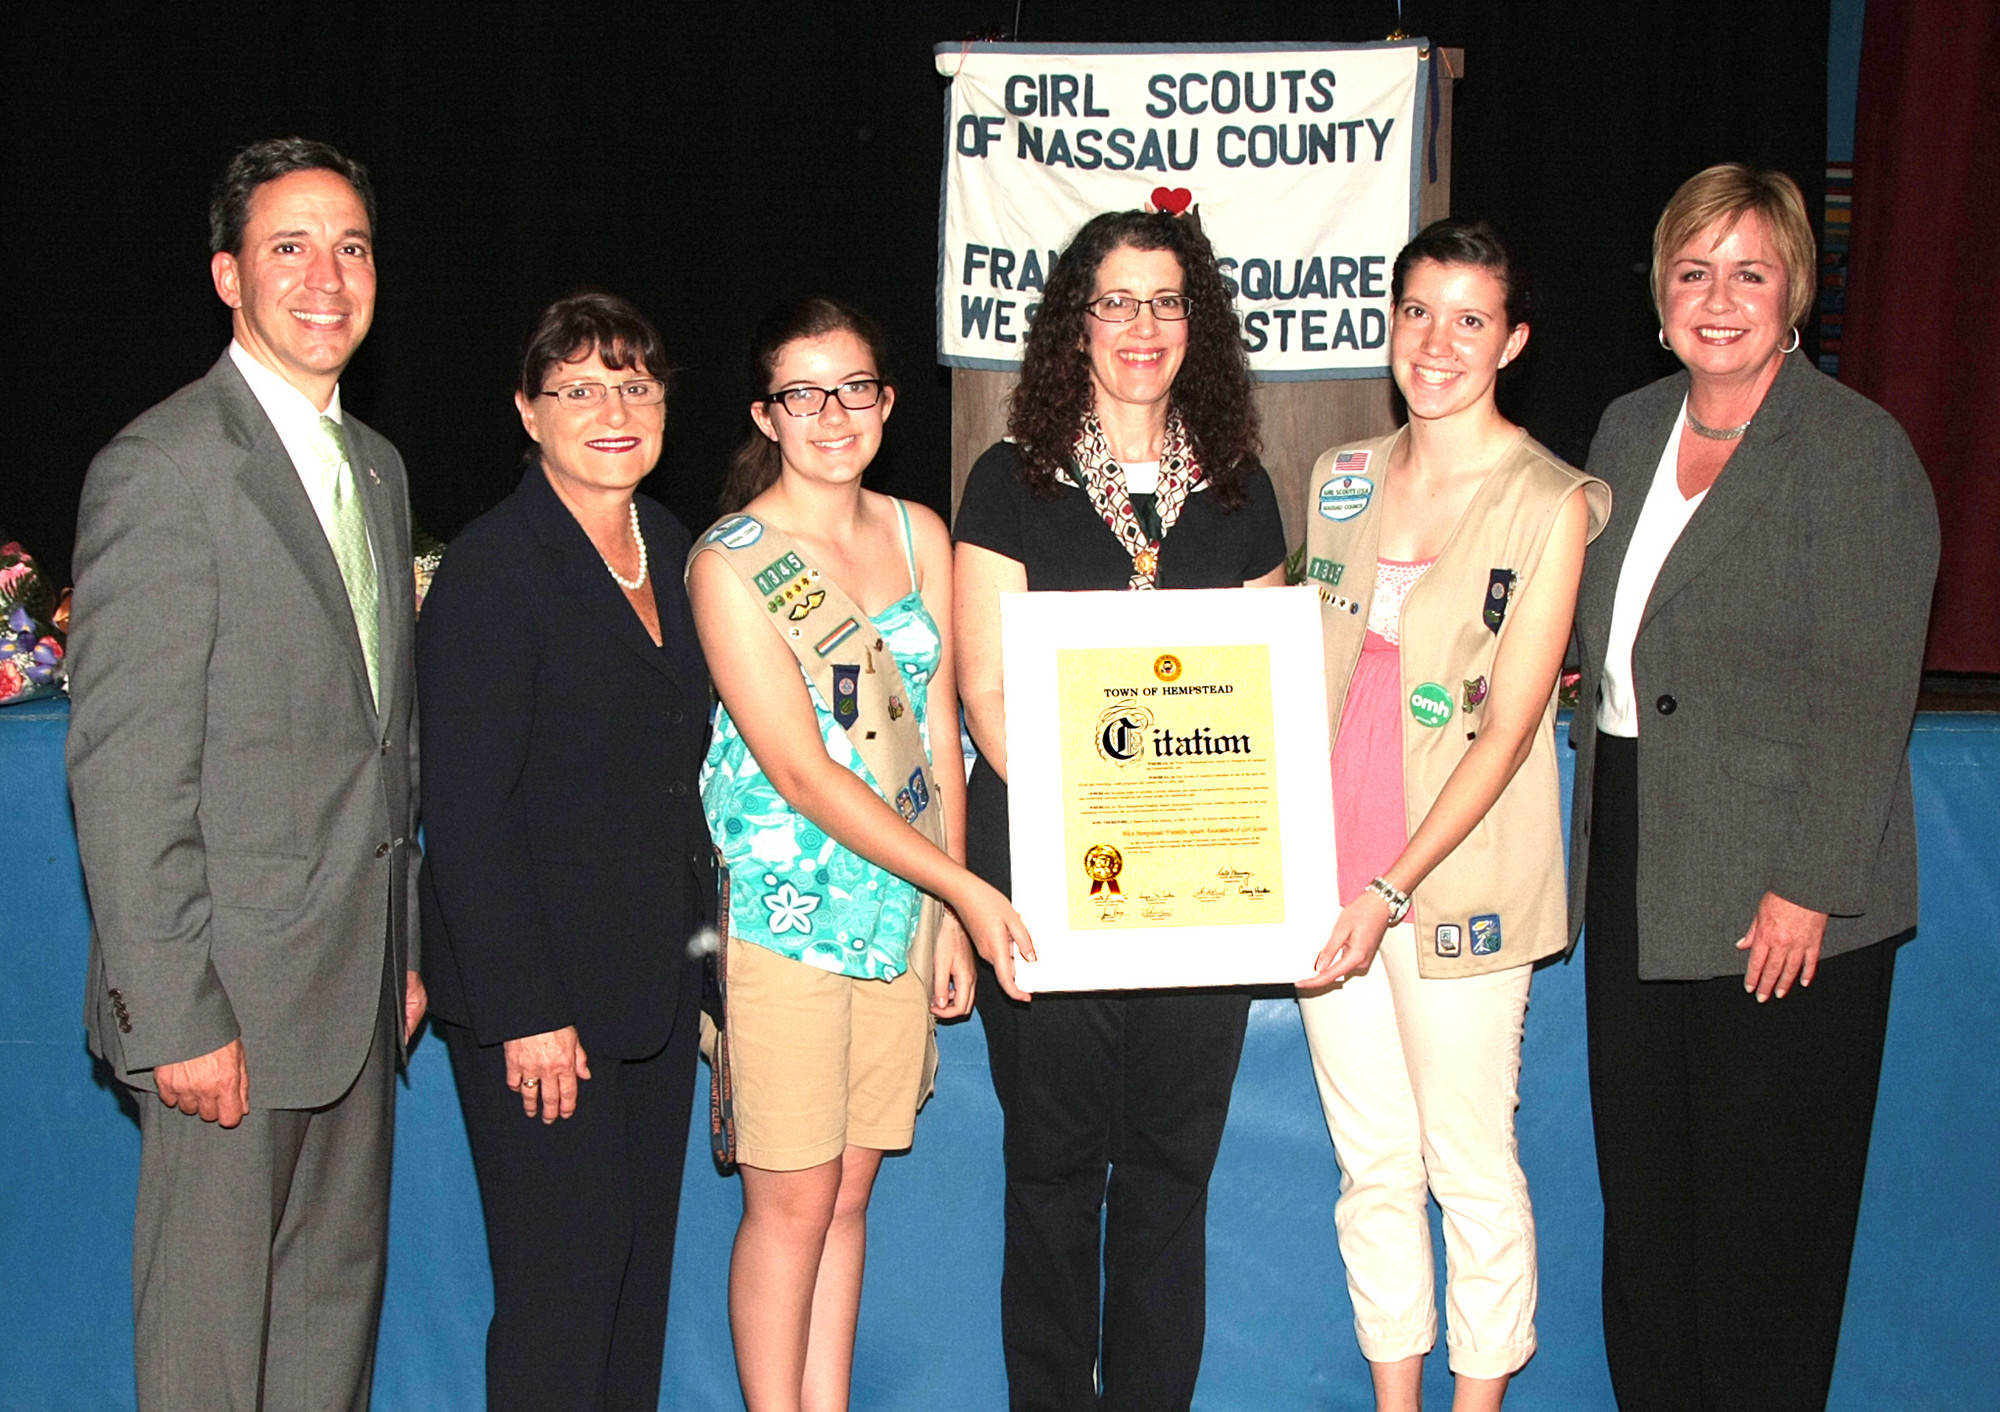 New York State Senator Jack Martins, Nassau County Clerk Maureen O'Connell, Town of Hempstead Supervisor Kate Murray congratulate Troop 1131 with the Silver Award alongside Leader Susan Vasilakis.